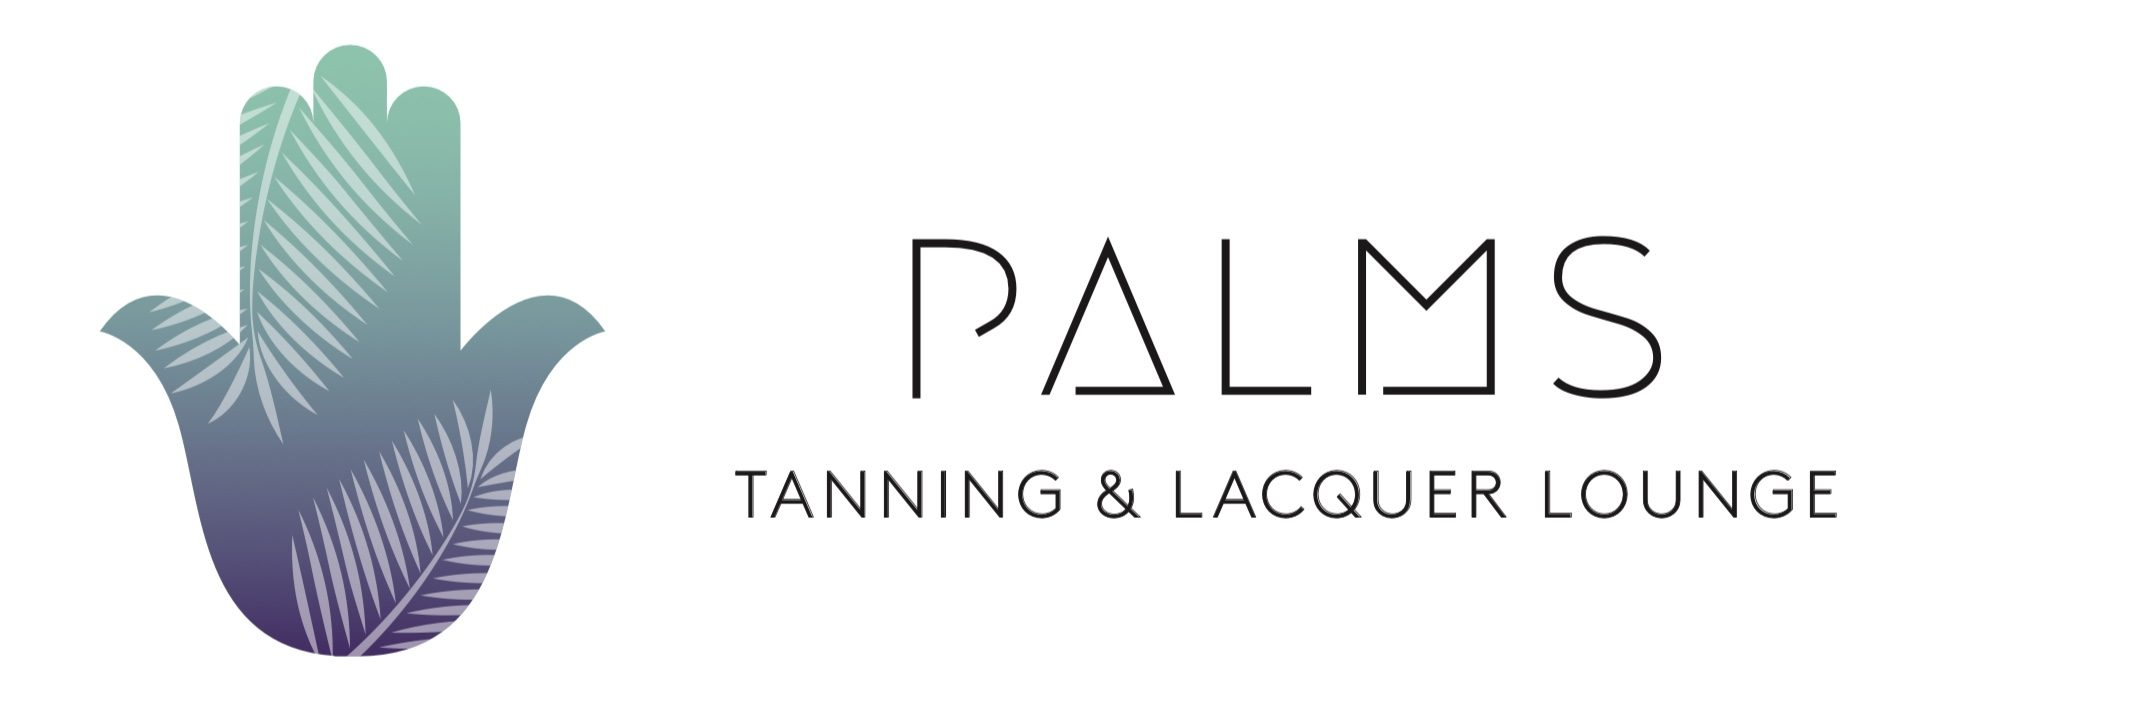 Palms Tanning & Lacquer Lounge